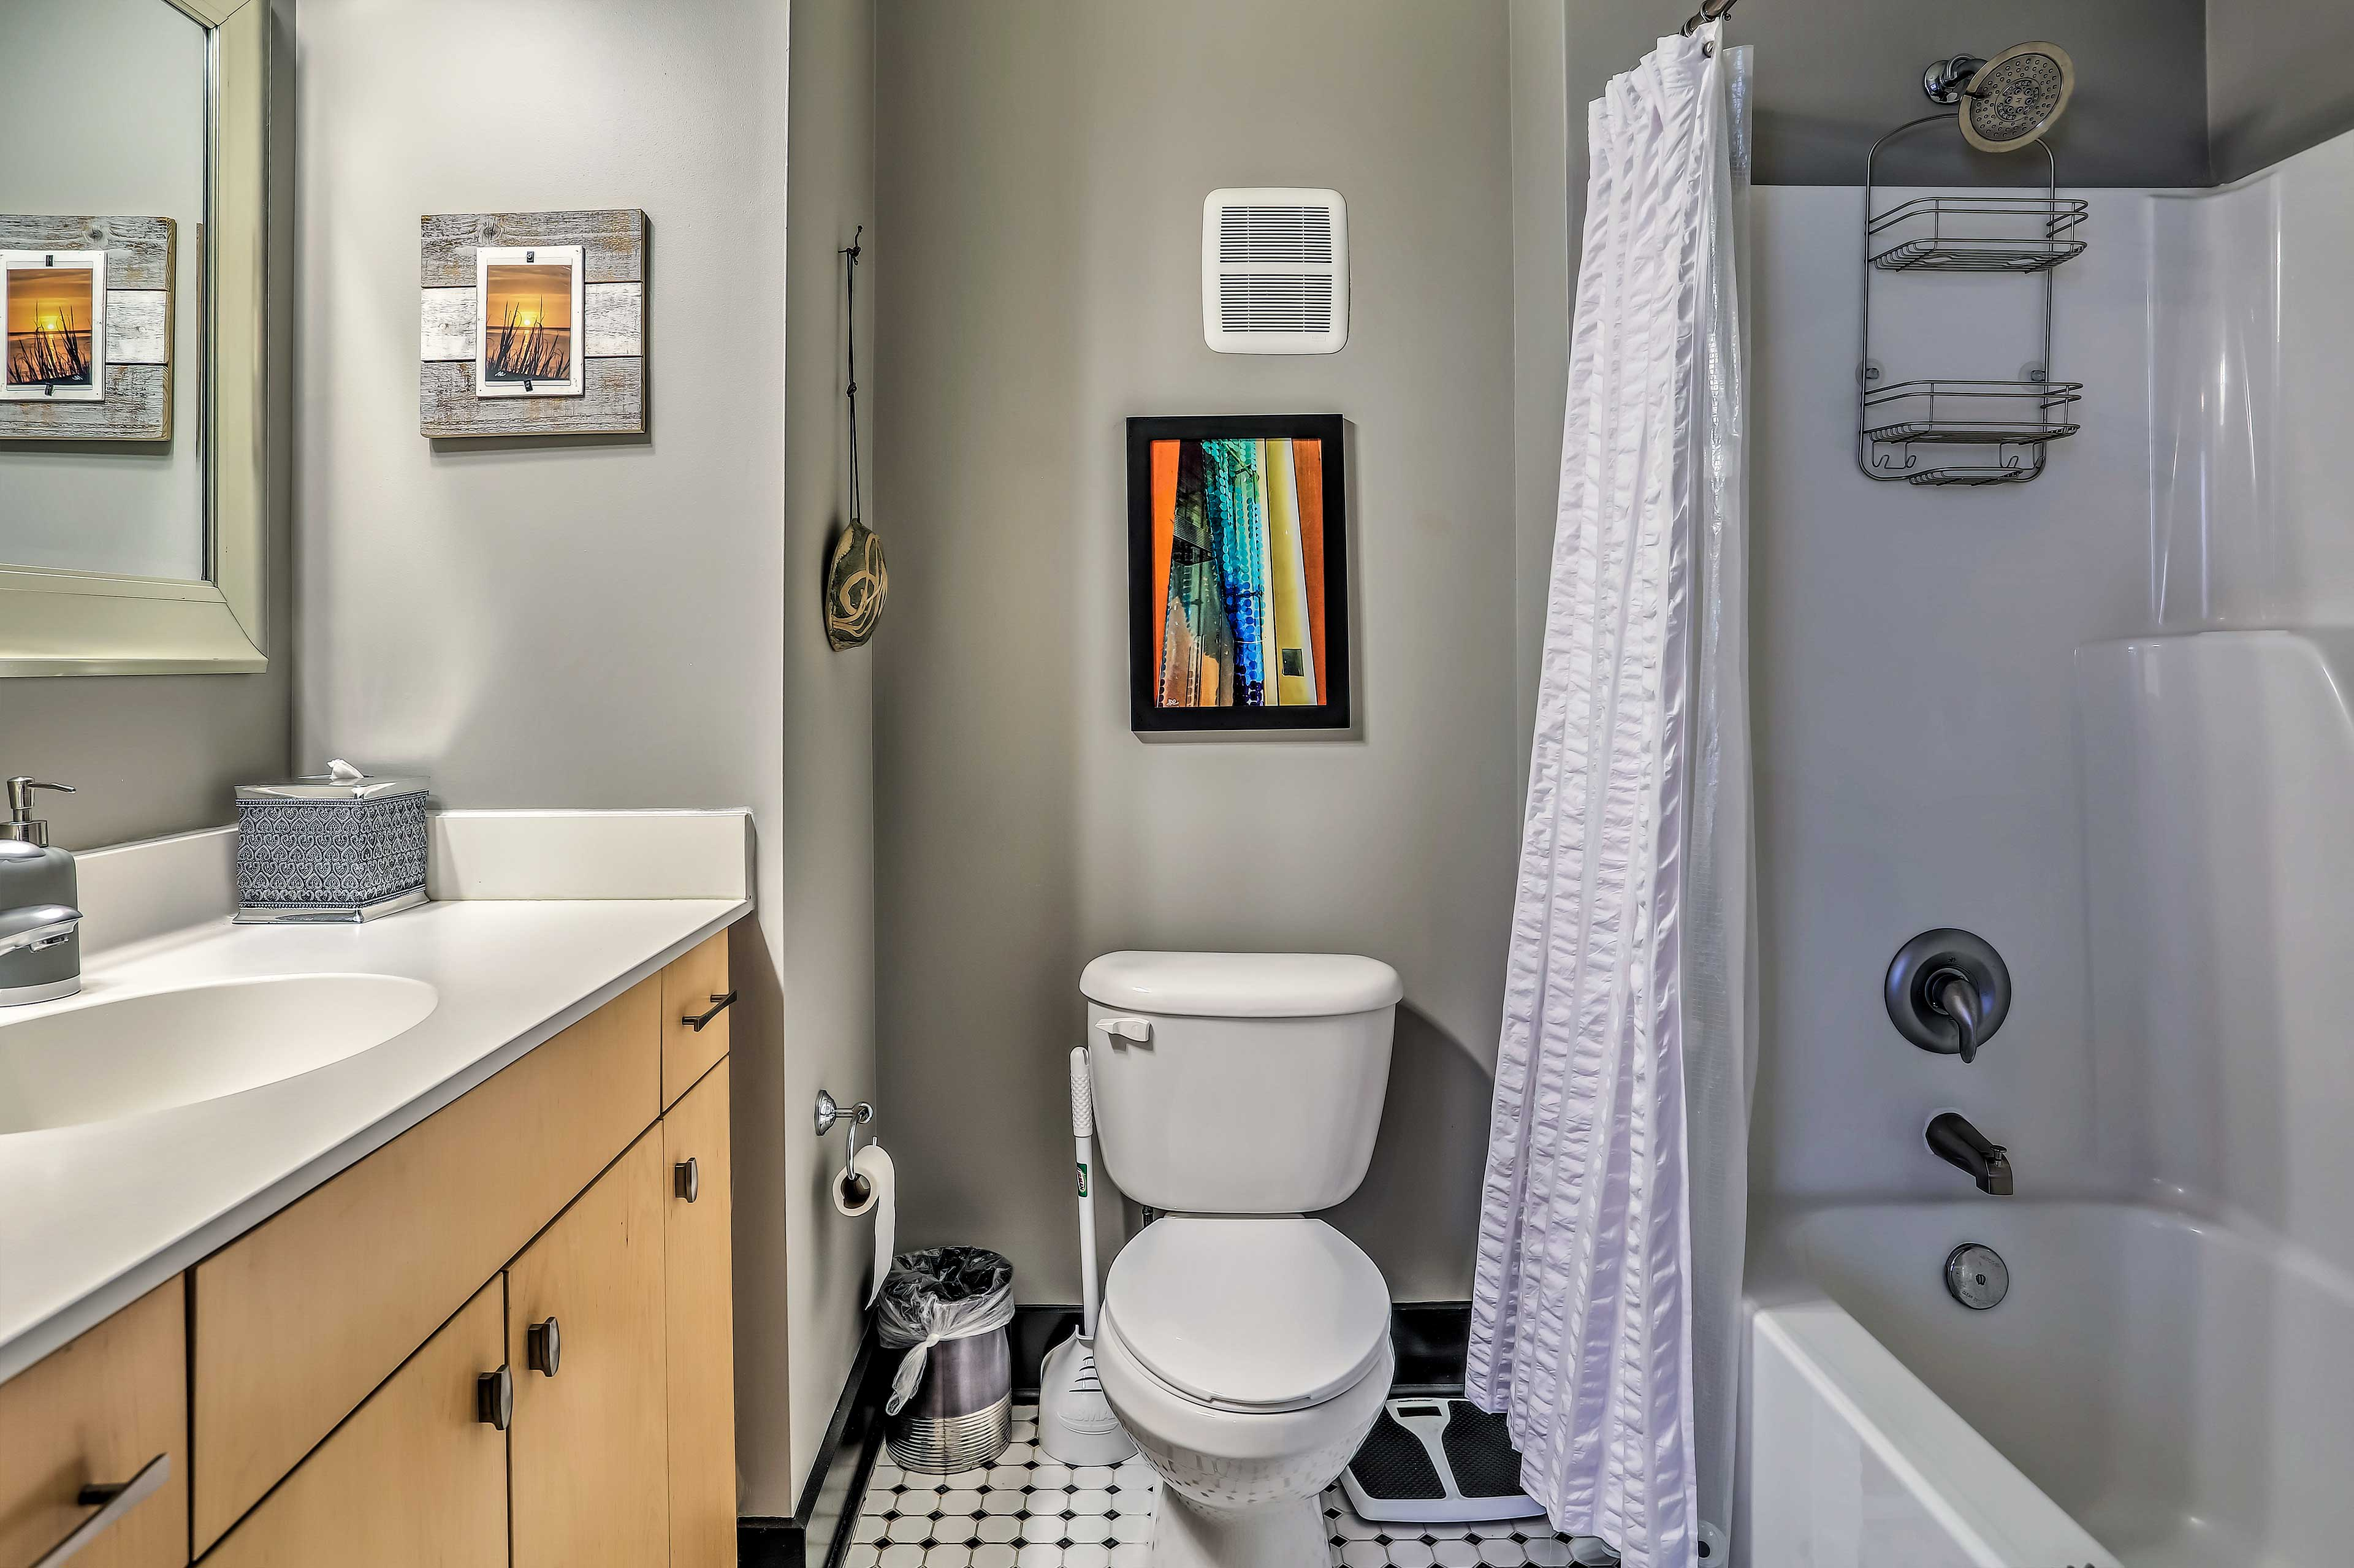 There are 2 bathrooms in this lovely condo.